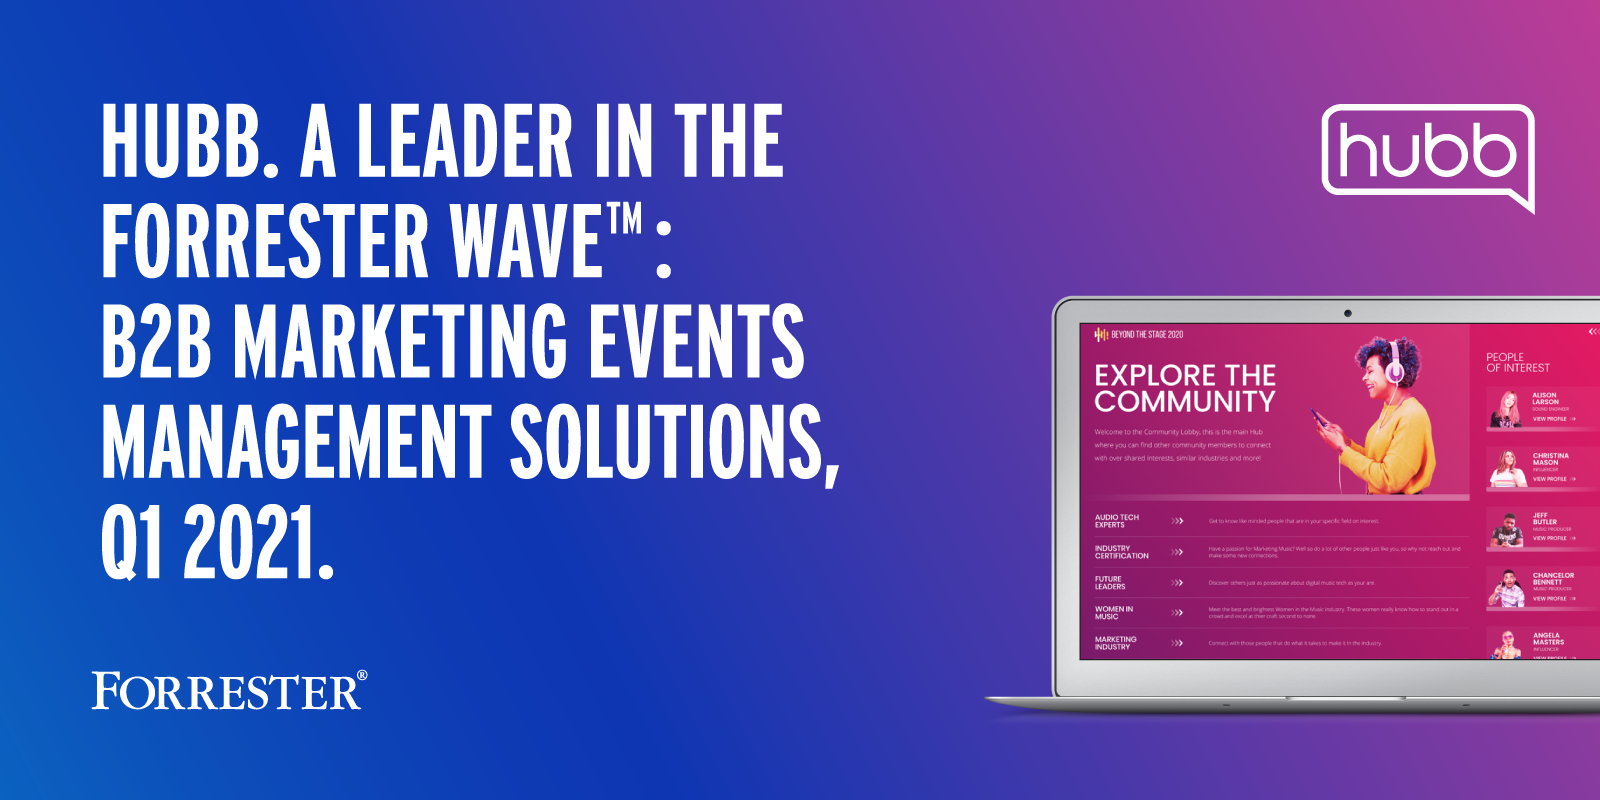 Independent Research Firm Names Hubb a Leader in the Events Management Space